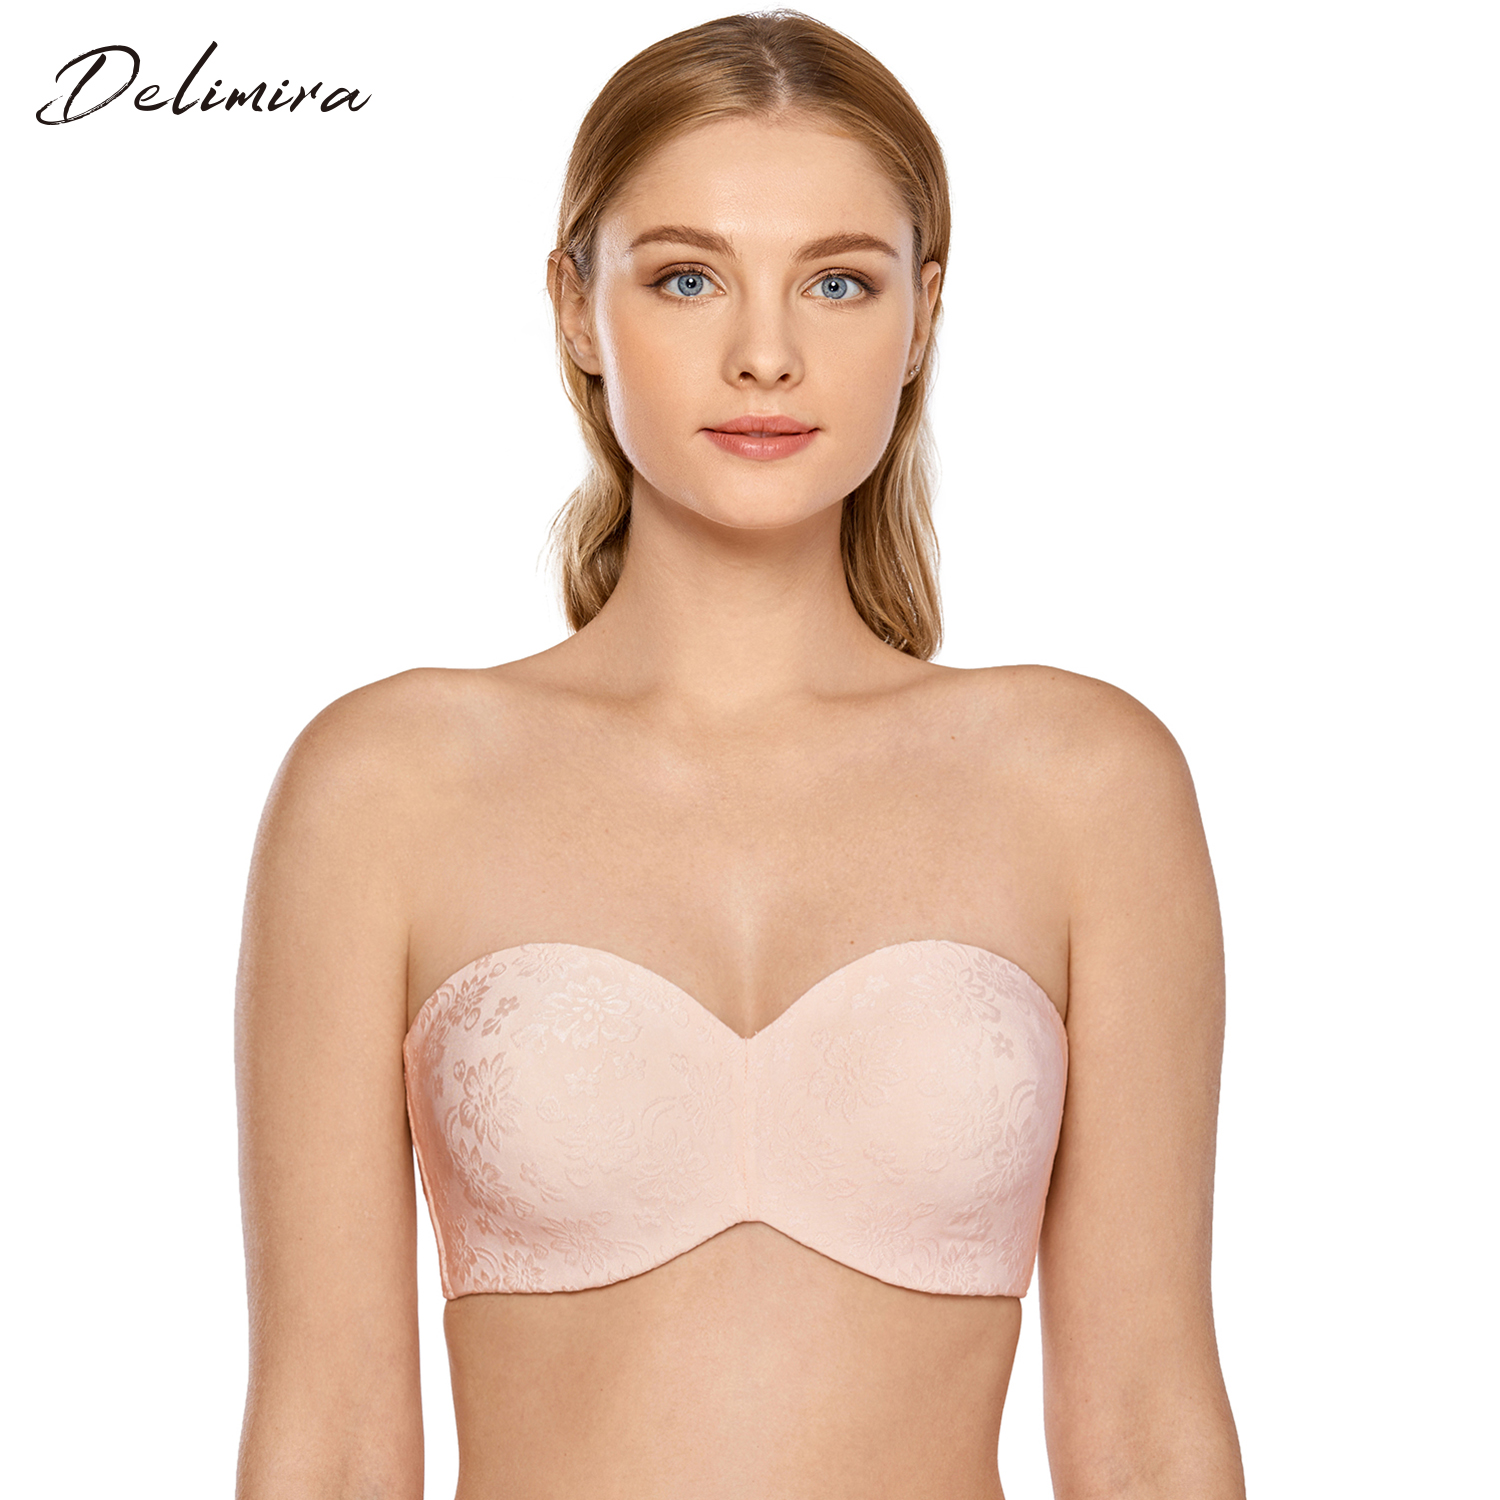 Delimira Women Plus Size Minimizer Strapless Bra Jacquard Unlined Underwire Bras For Large Bust Brassiere